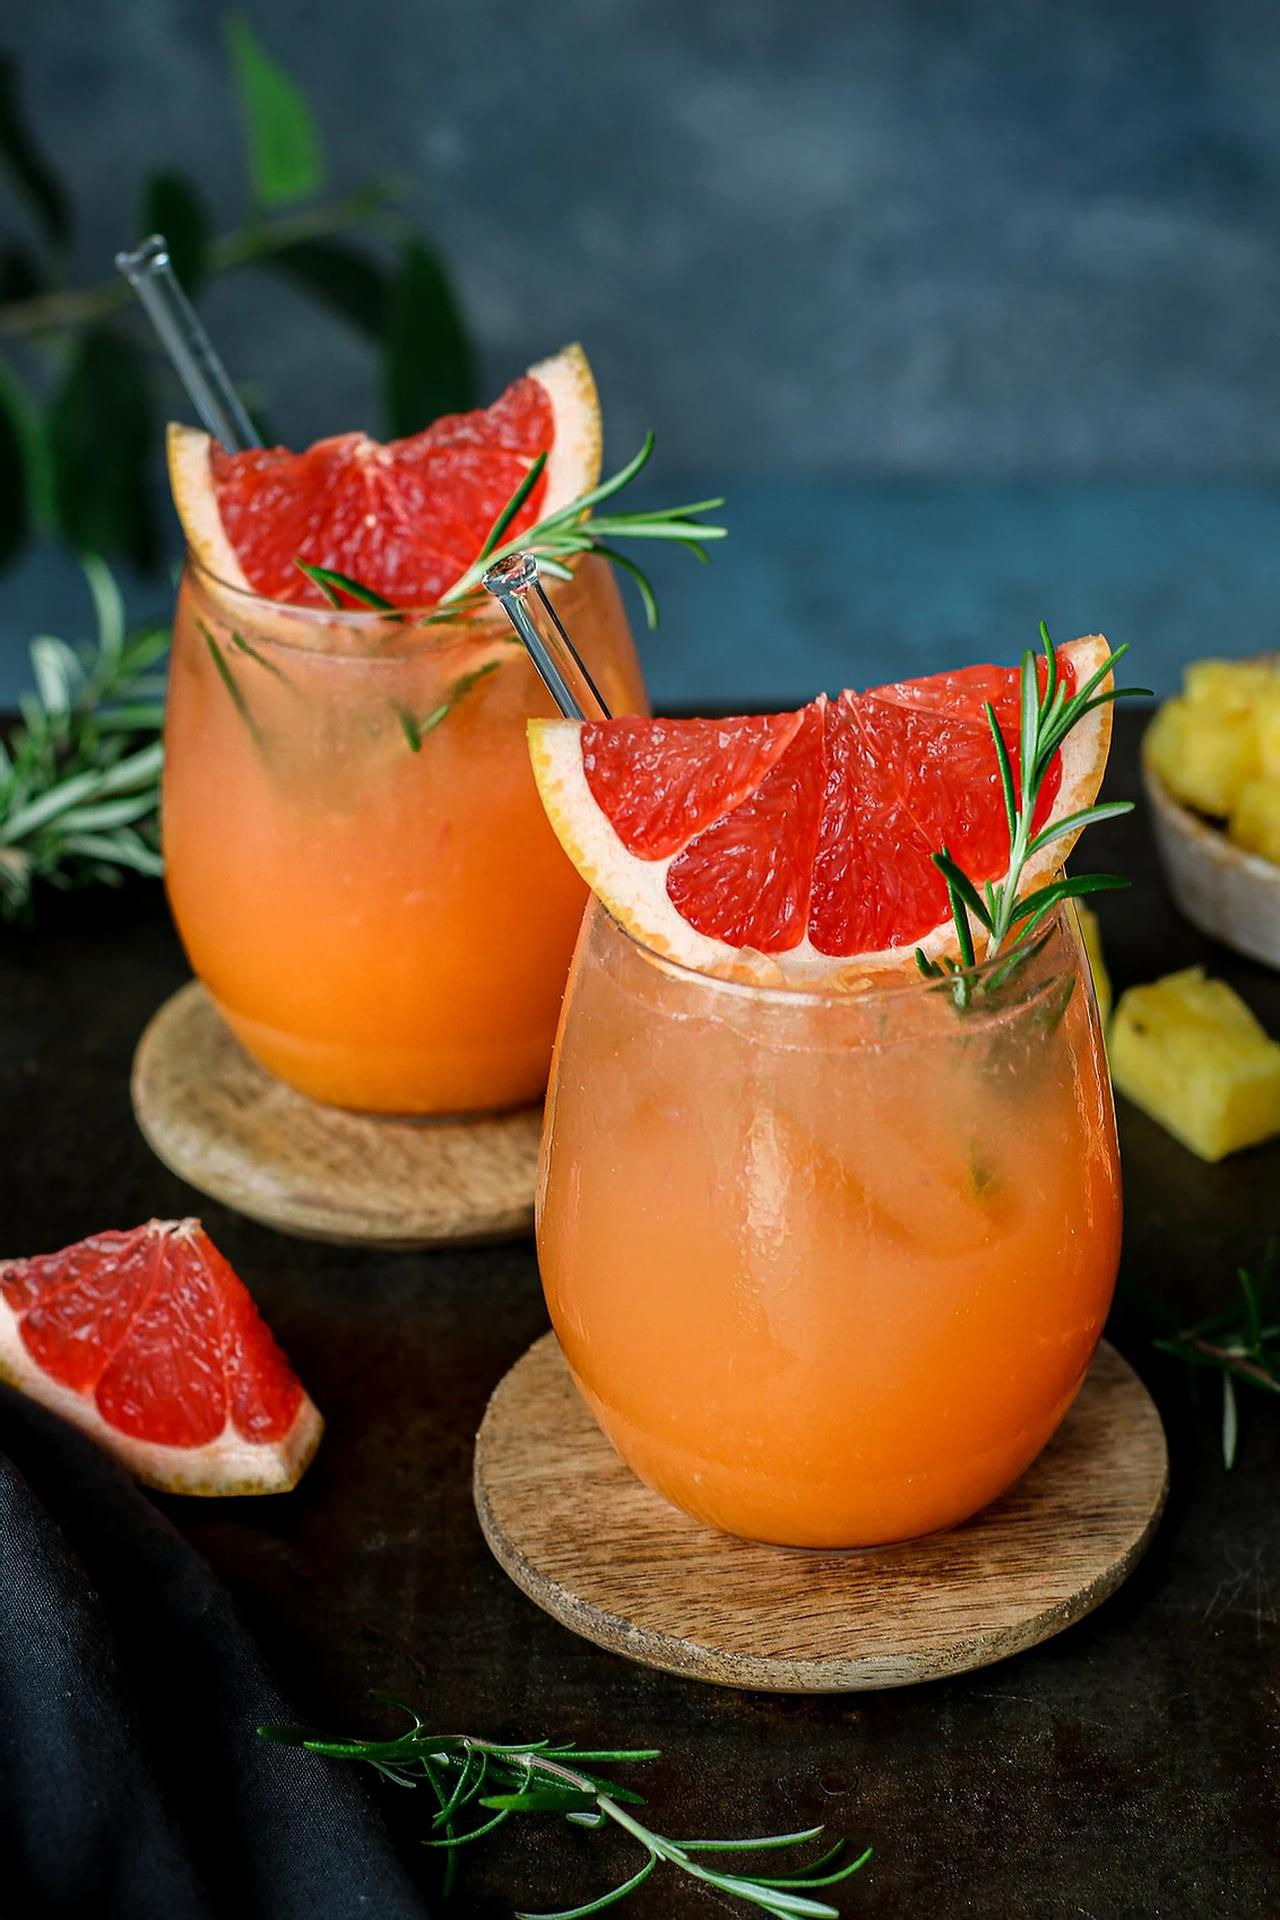 Main image of Grapefruit Rosemary Spritzer